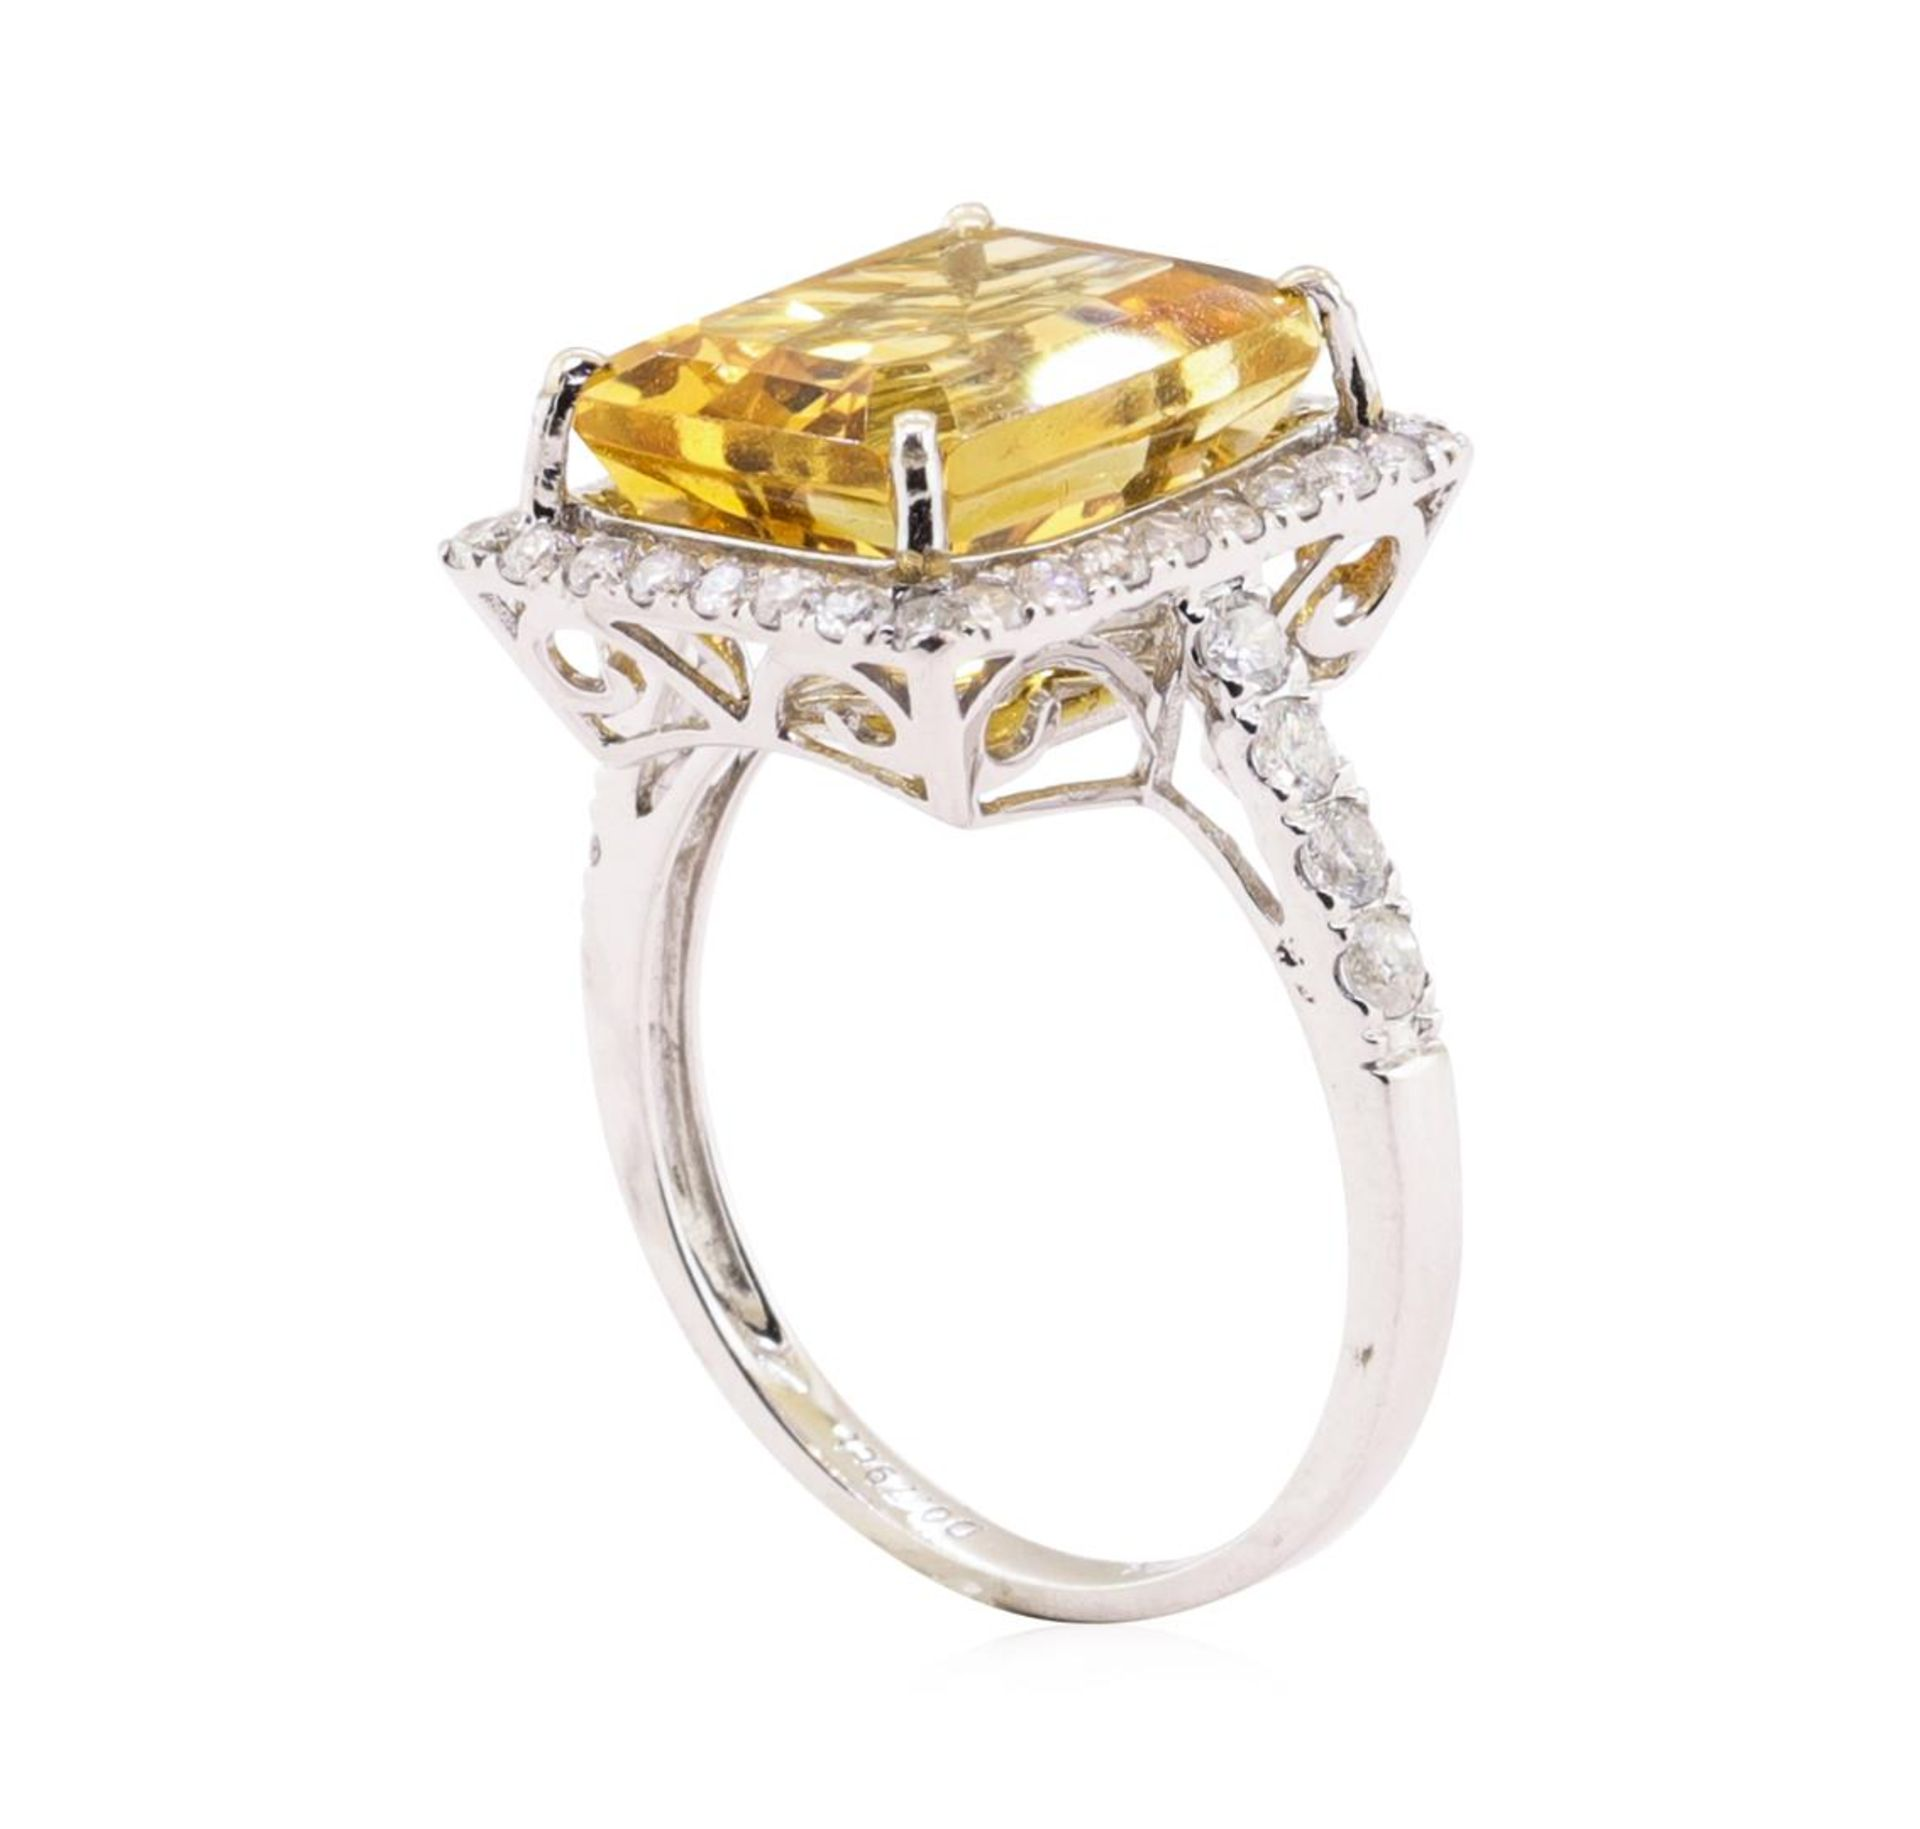 6.25ct Citrine and Diamond Ring - 14KT White Gold - Image 4 of 5